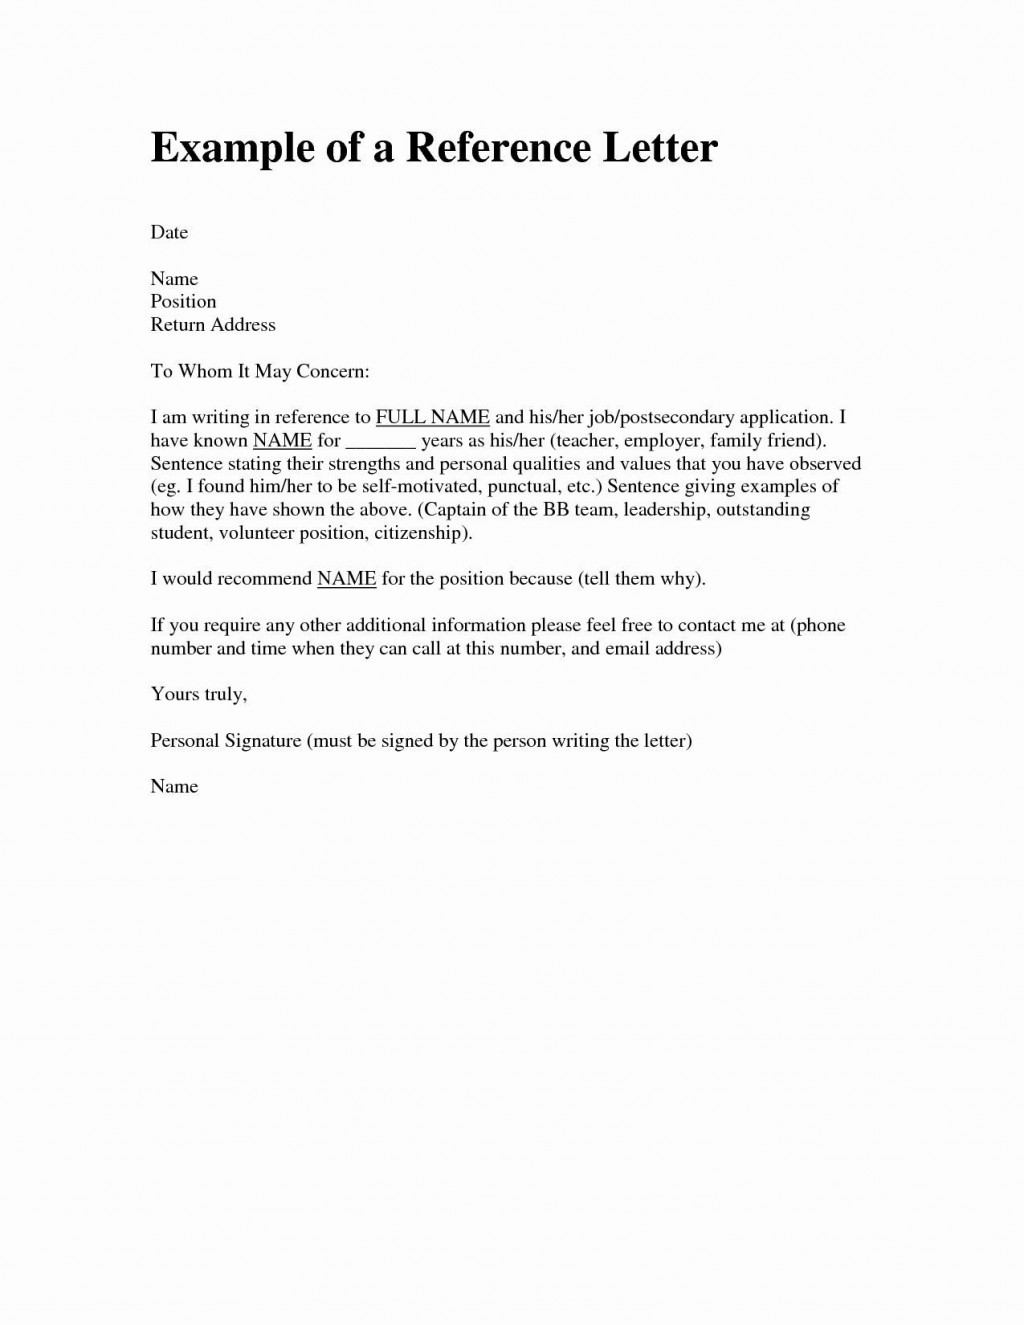 003 Astounding Letter Of Recomendation Template Image  Reference For Employment Sample Recommendation Teacher Student From EmployerLarge